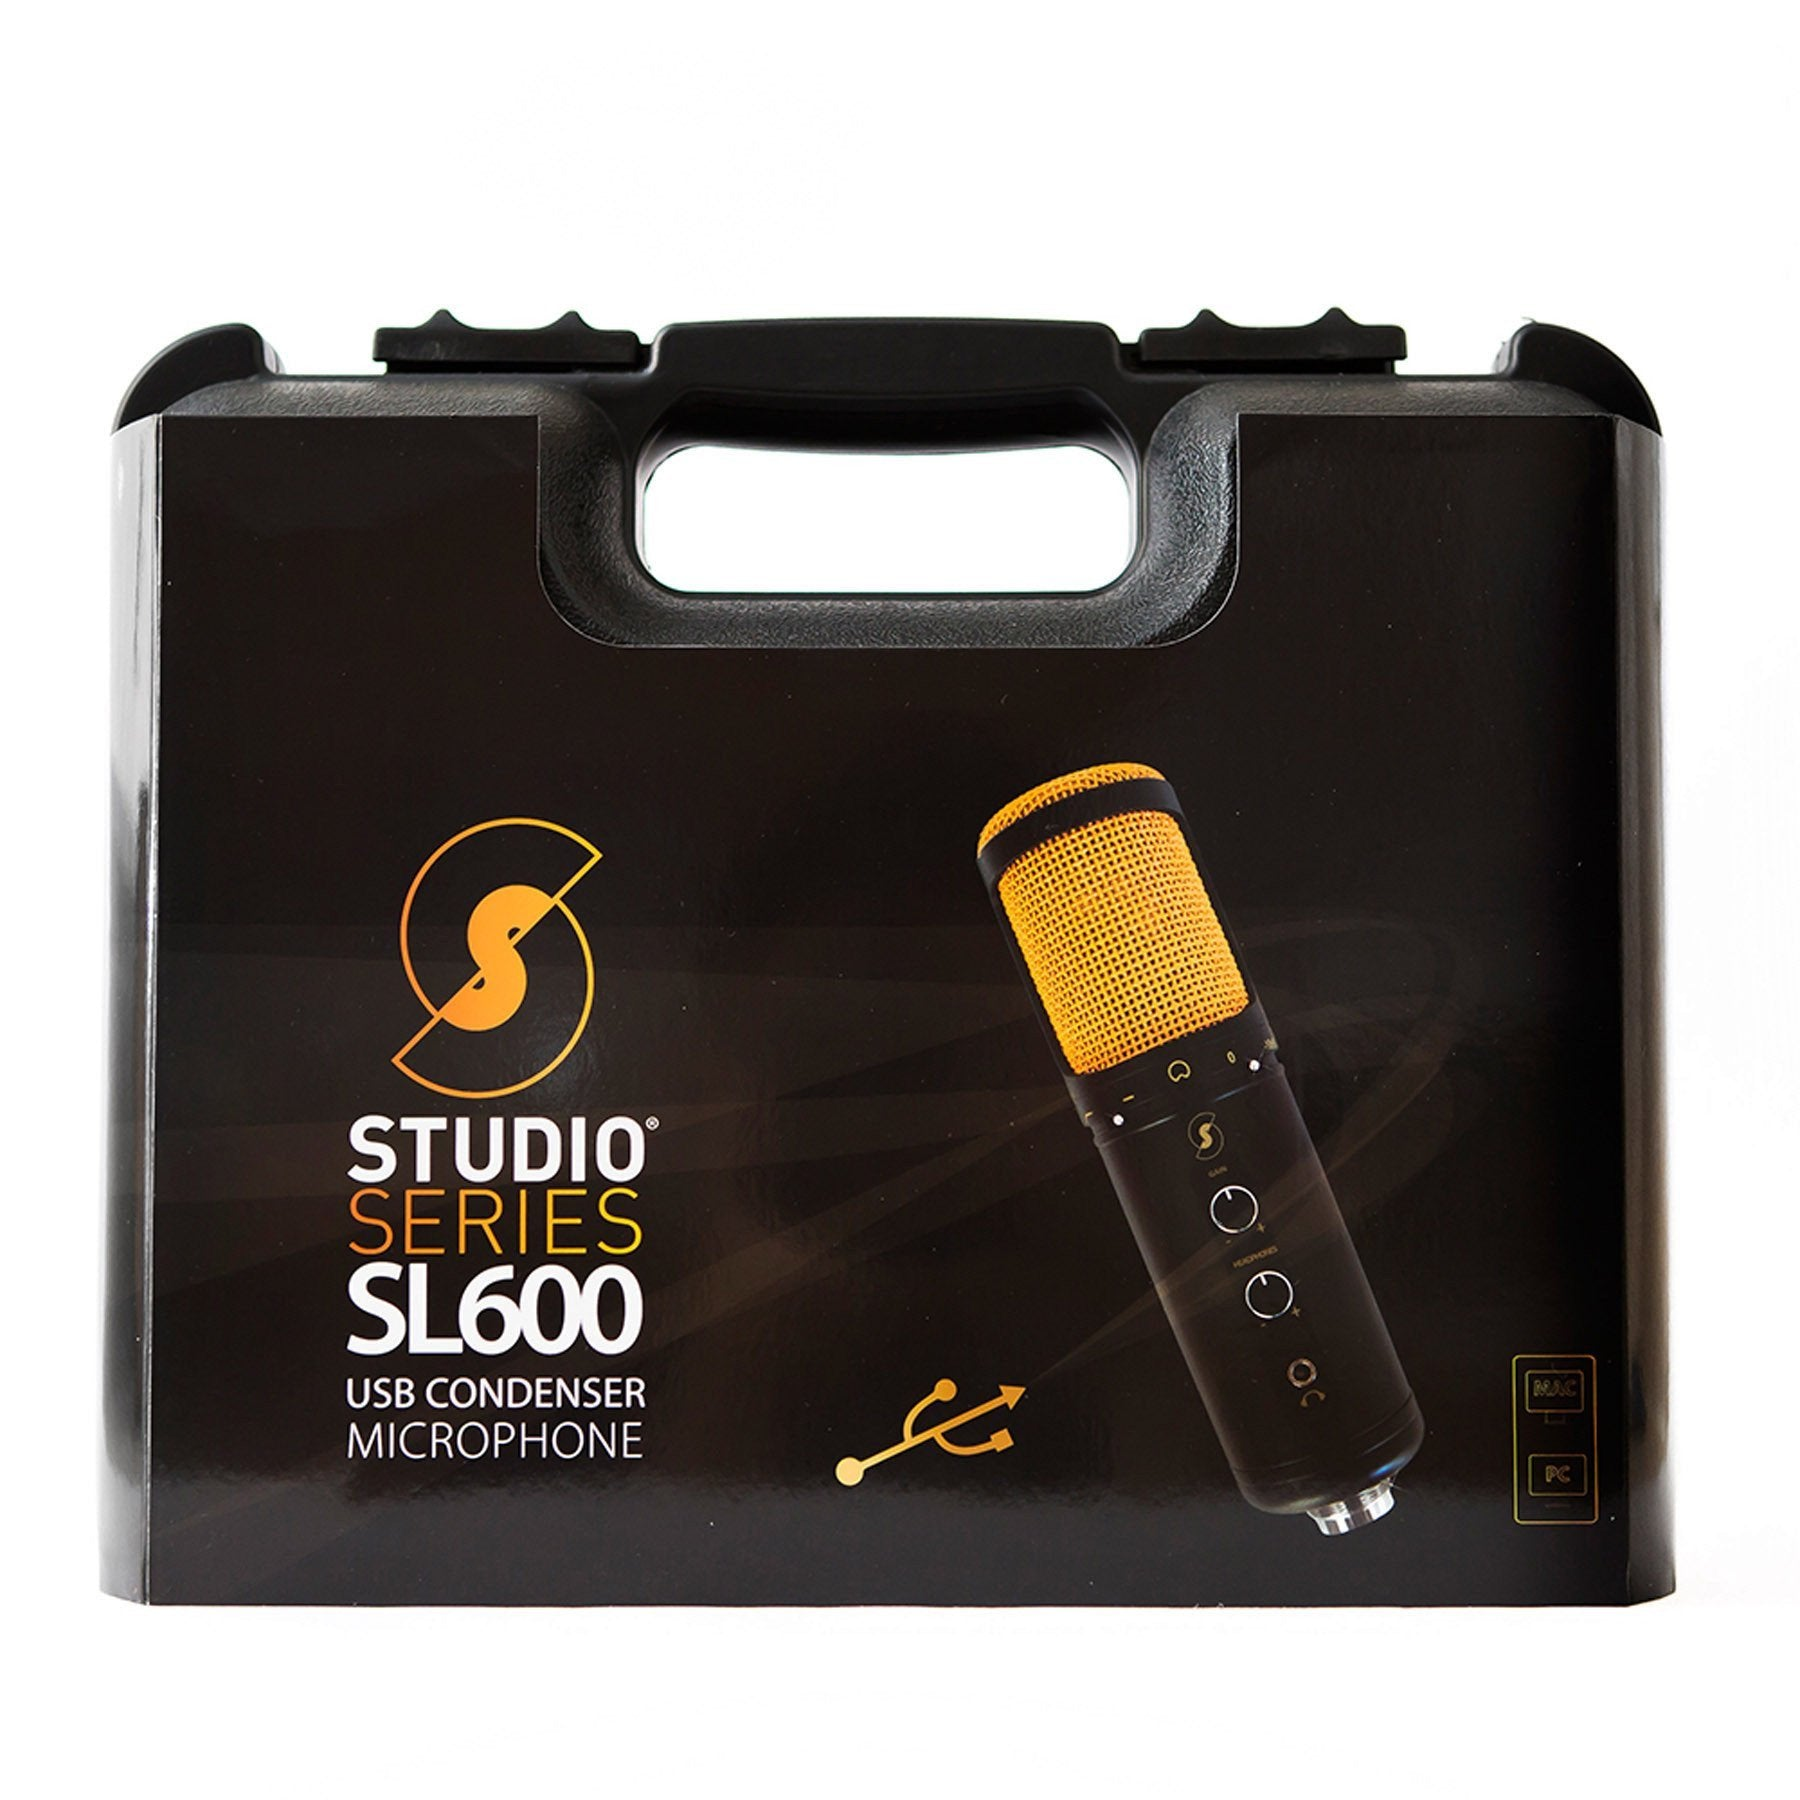 Refurbished SL600 Condenser USB Microphone